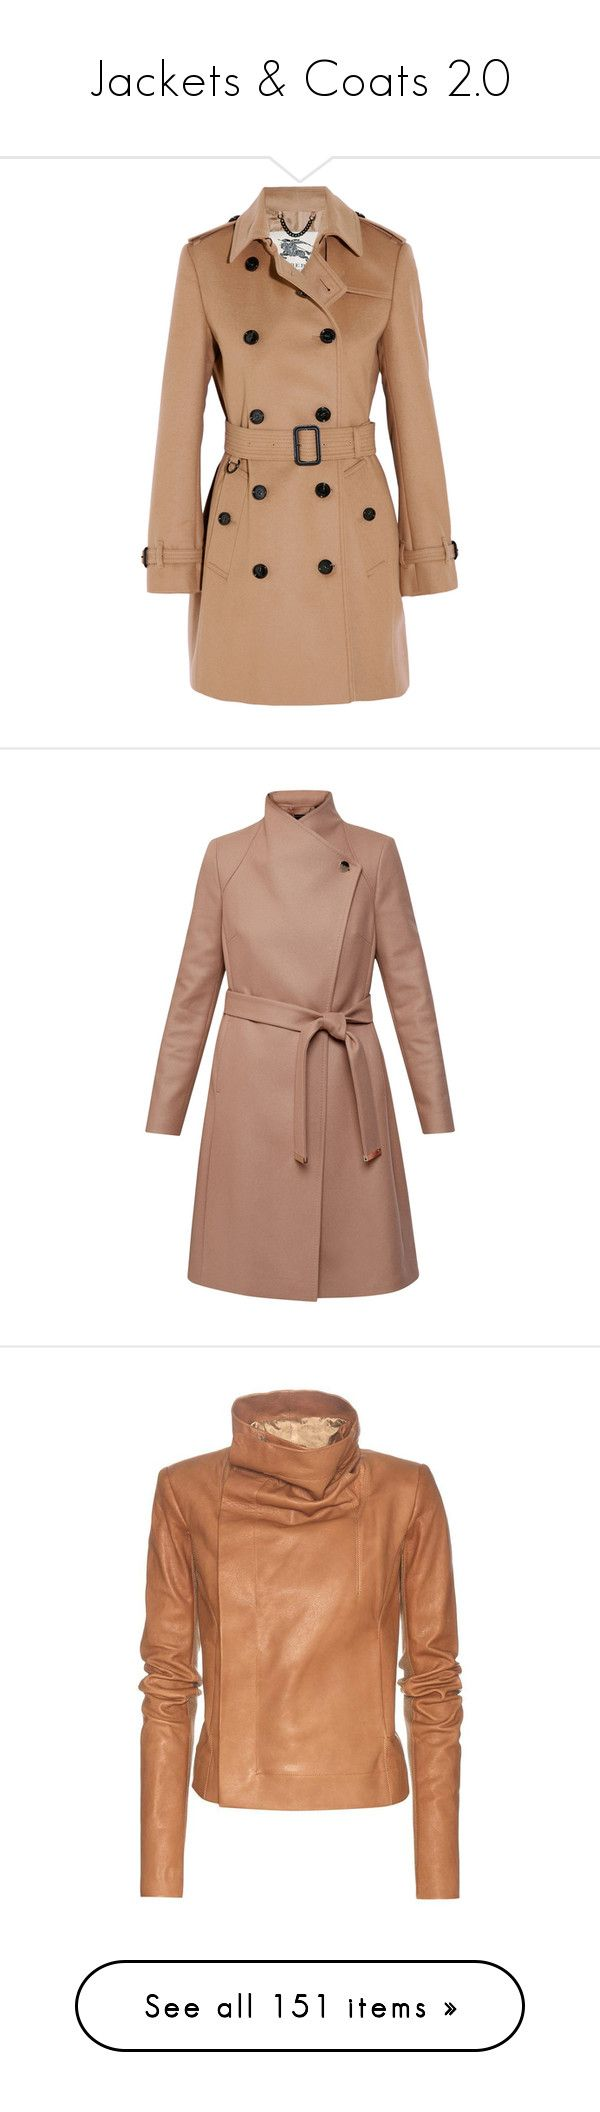 """""""Jackets & Coats 2.0"""" by onecrystal ❤ liked on Polyvore featuring outerwear, coats, jackets, burberry, trench, double breasted military coat, woolen trench coat, trench coat, double breasted coat and military style coat"""